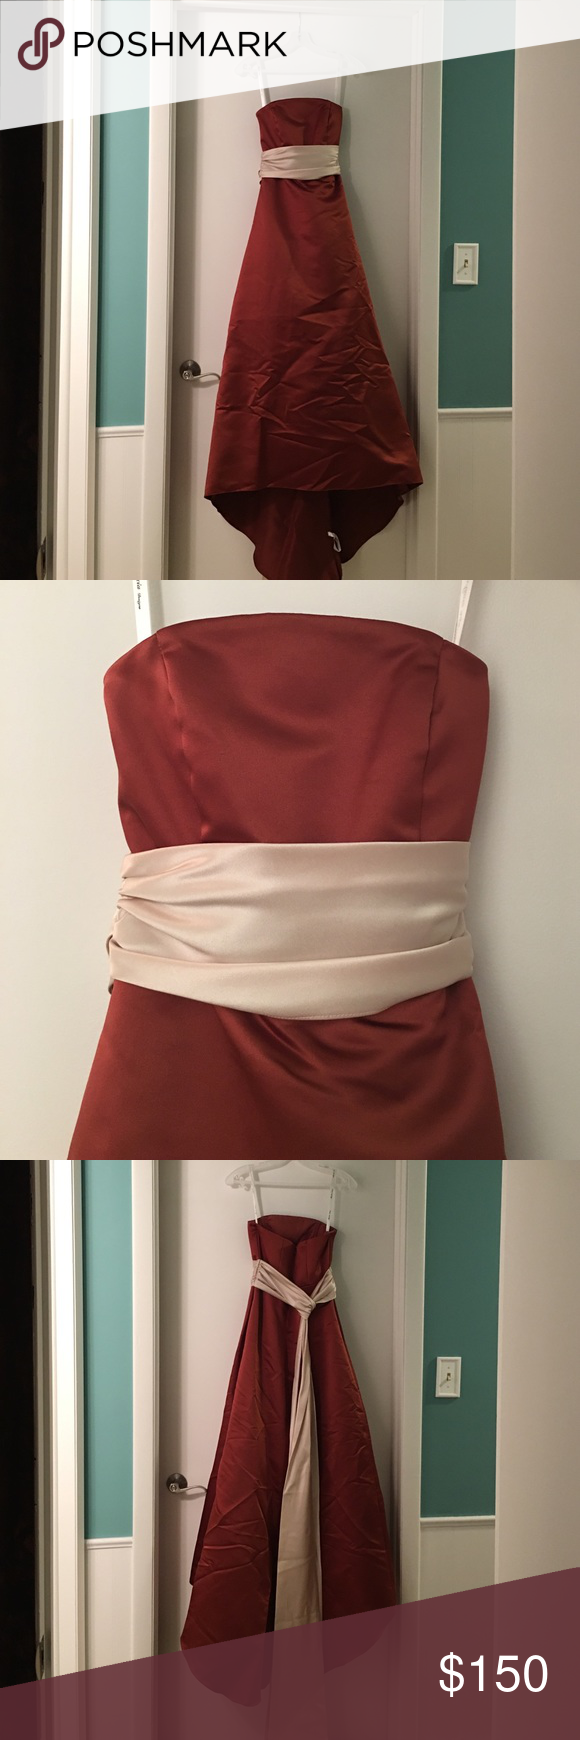 Junior bridesmaid dress Selling a custom made strapless junior bridesmaids dress, a burnt autumn orange color, fits a 5'0 tall girl, can be hemmed, comes with a shawl of the same color as dress, in perfect condition - nothing wrong with it, just sits in my closet. No trades. If you need more pics just ask! Dresses Strapless